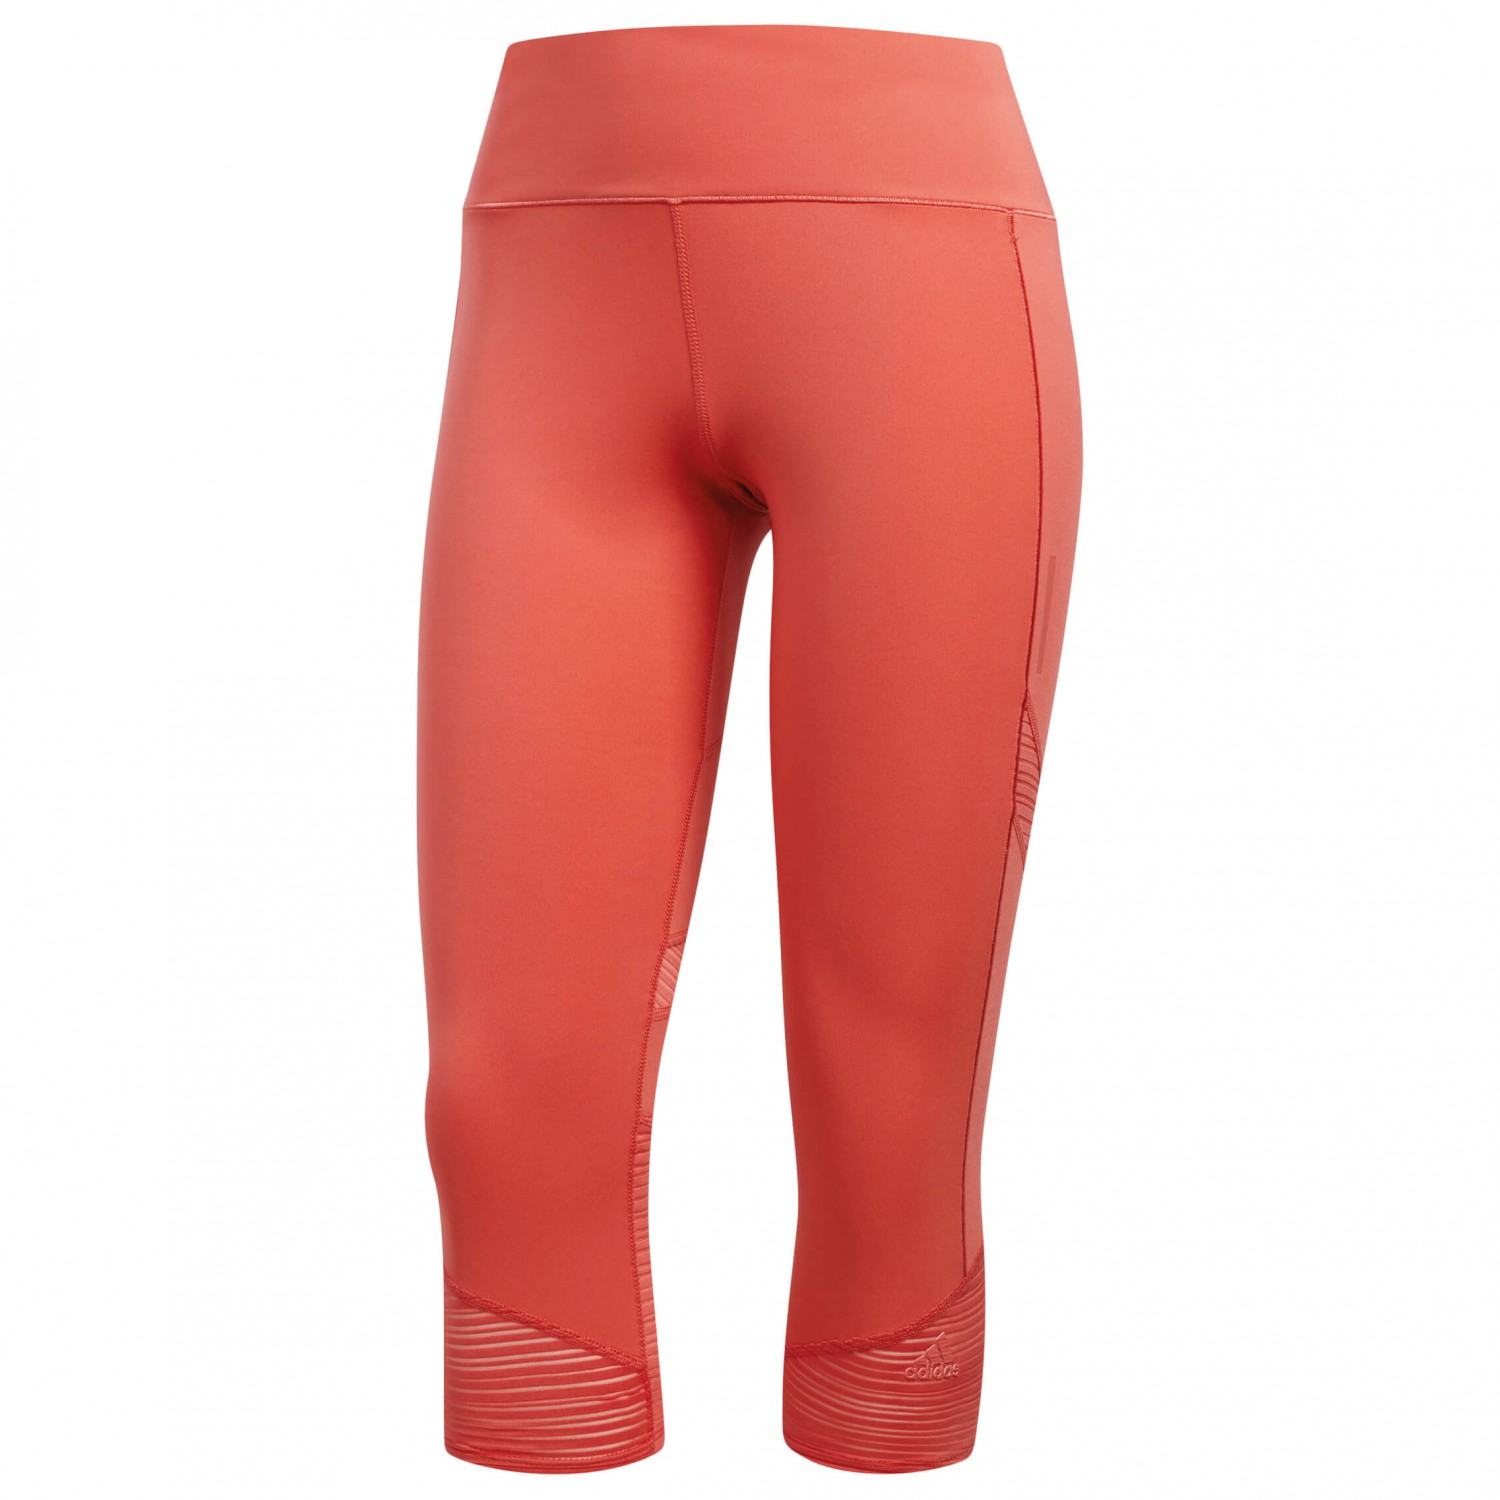 af992eac402 Adidas How We Do 3/4 Tight - 3/4 running tights Women's | Buy online ...